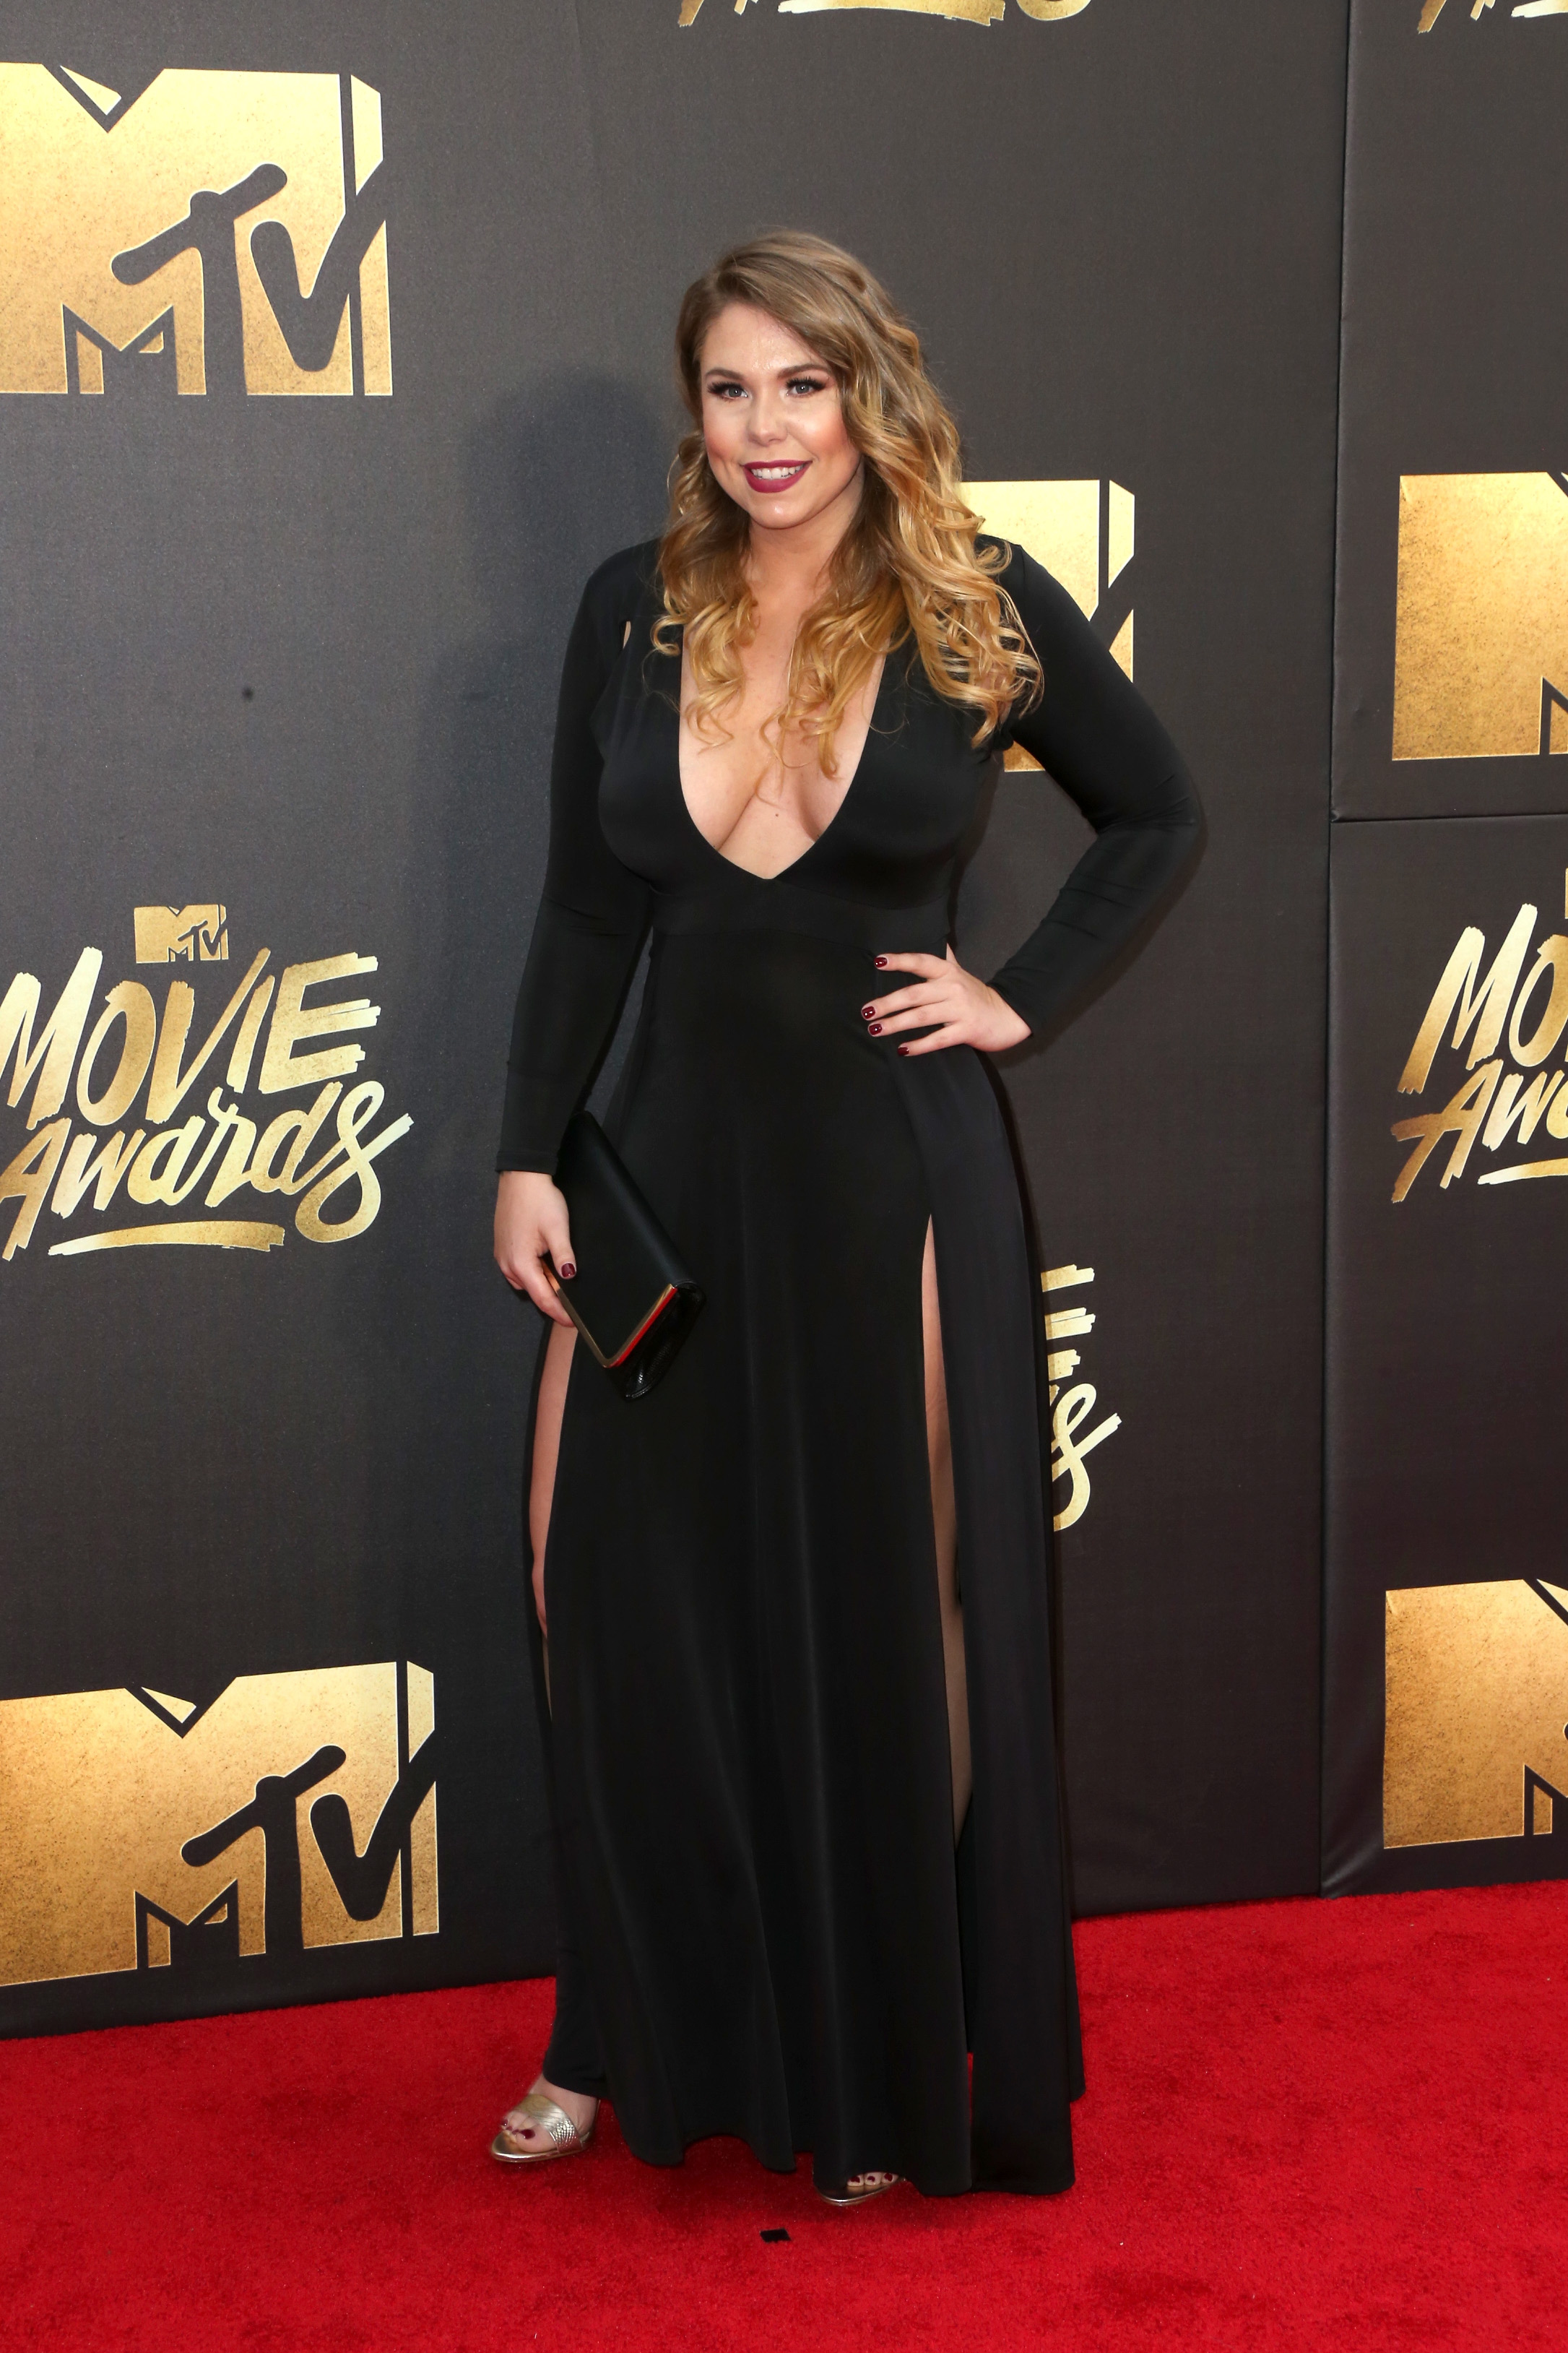 Teen-Mom-2s-Kailyn-Lowry-Reveals-Shes-Been-Looking-Into-Sperm-Banks-For-Baby-No.-4